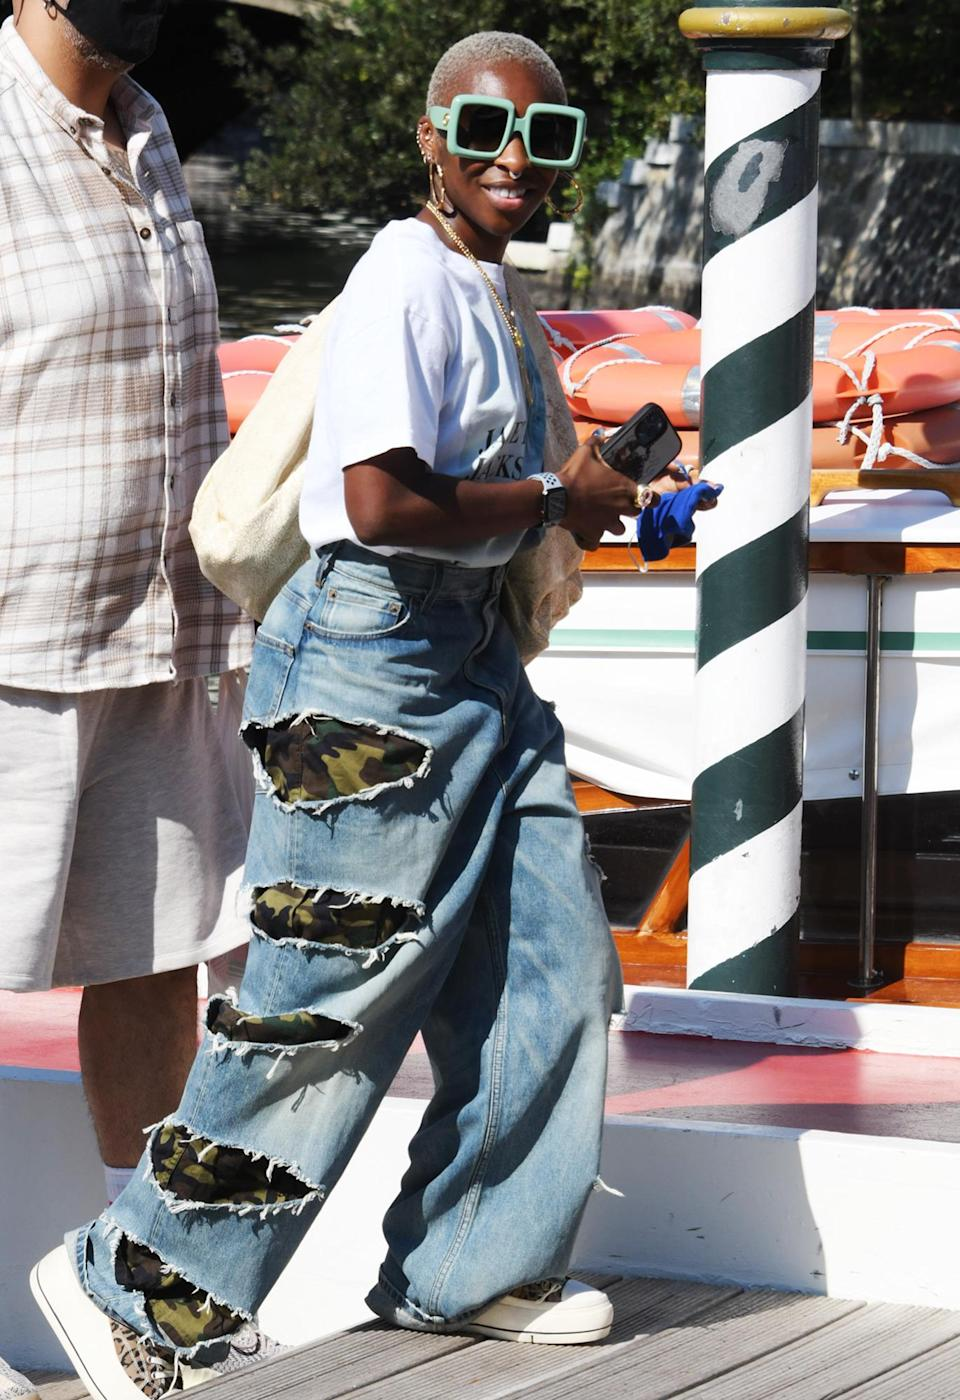 <p>Cynthia Erivo sports jeans and a tee during day two of the Venice Film Festival on Sept. 2.</p>